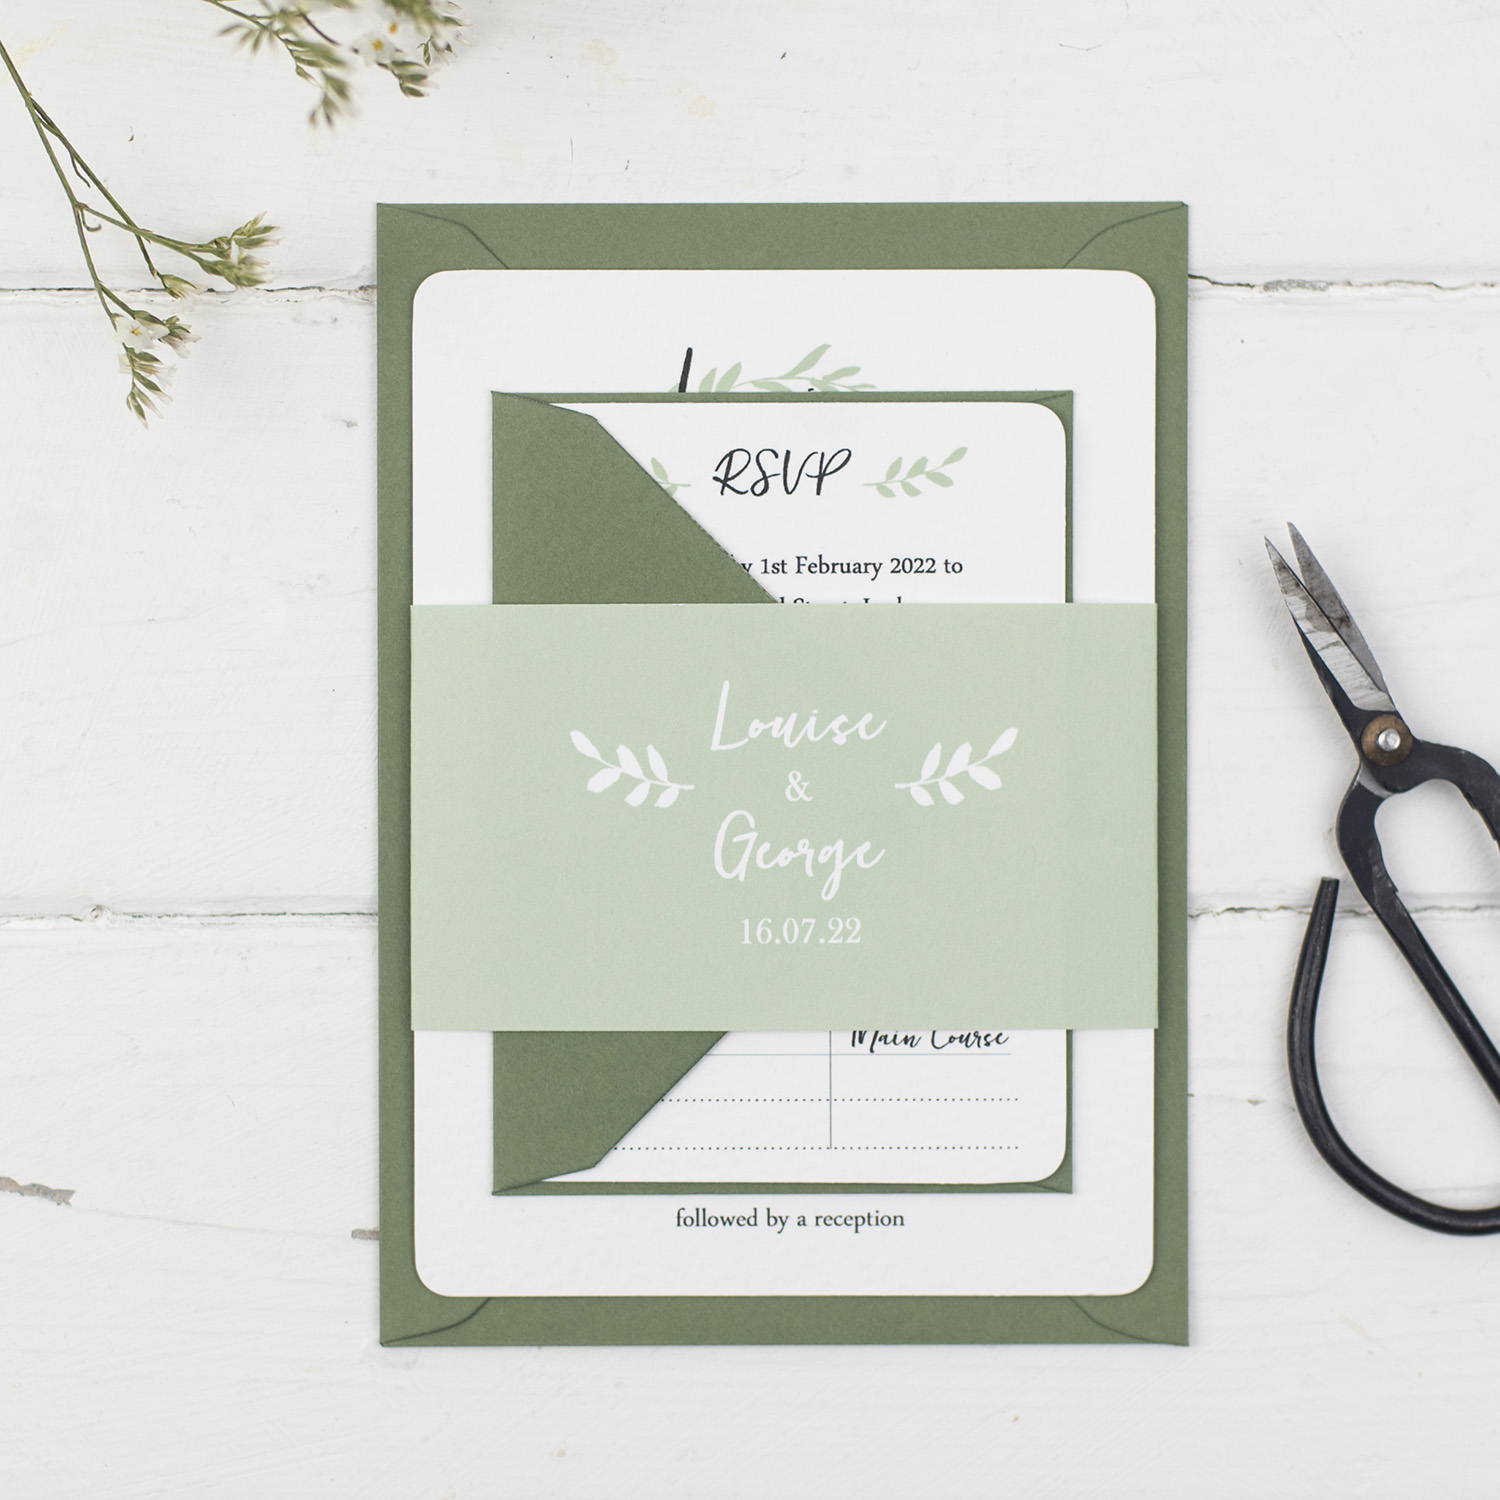 wedding invitation order white green leaf wreath silhouette dark green envelope invitation bundle